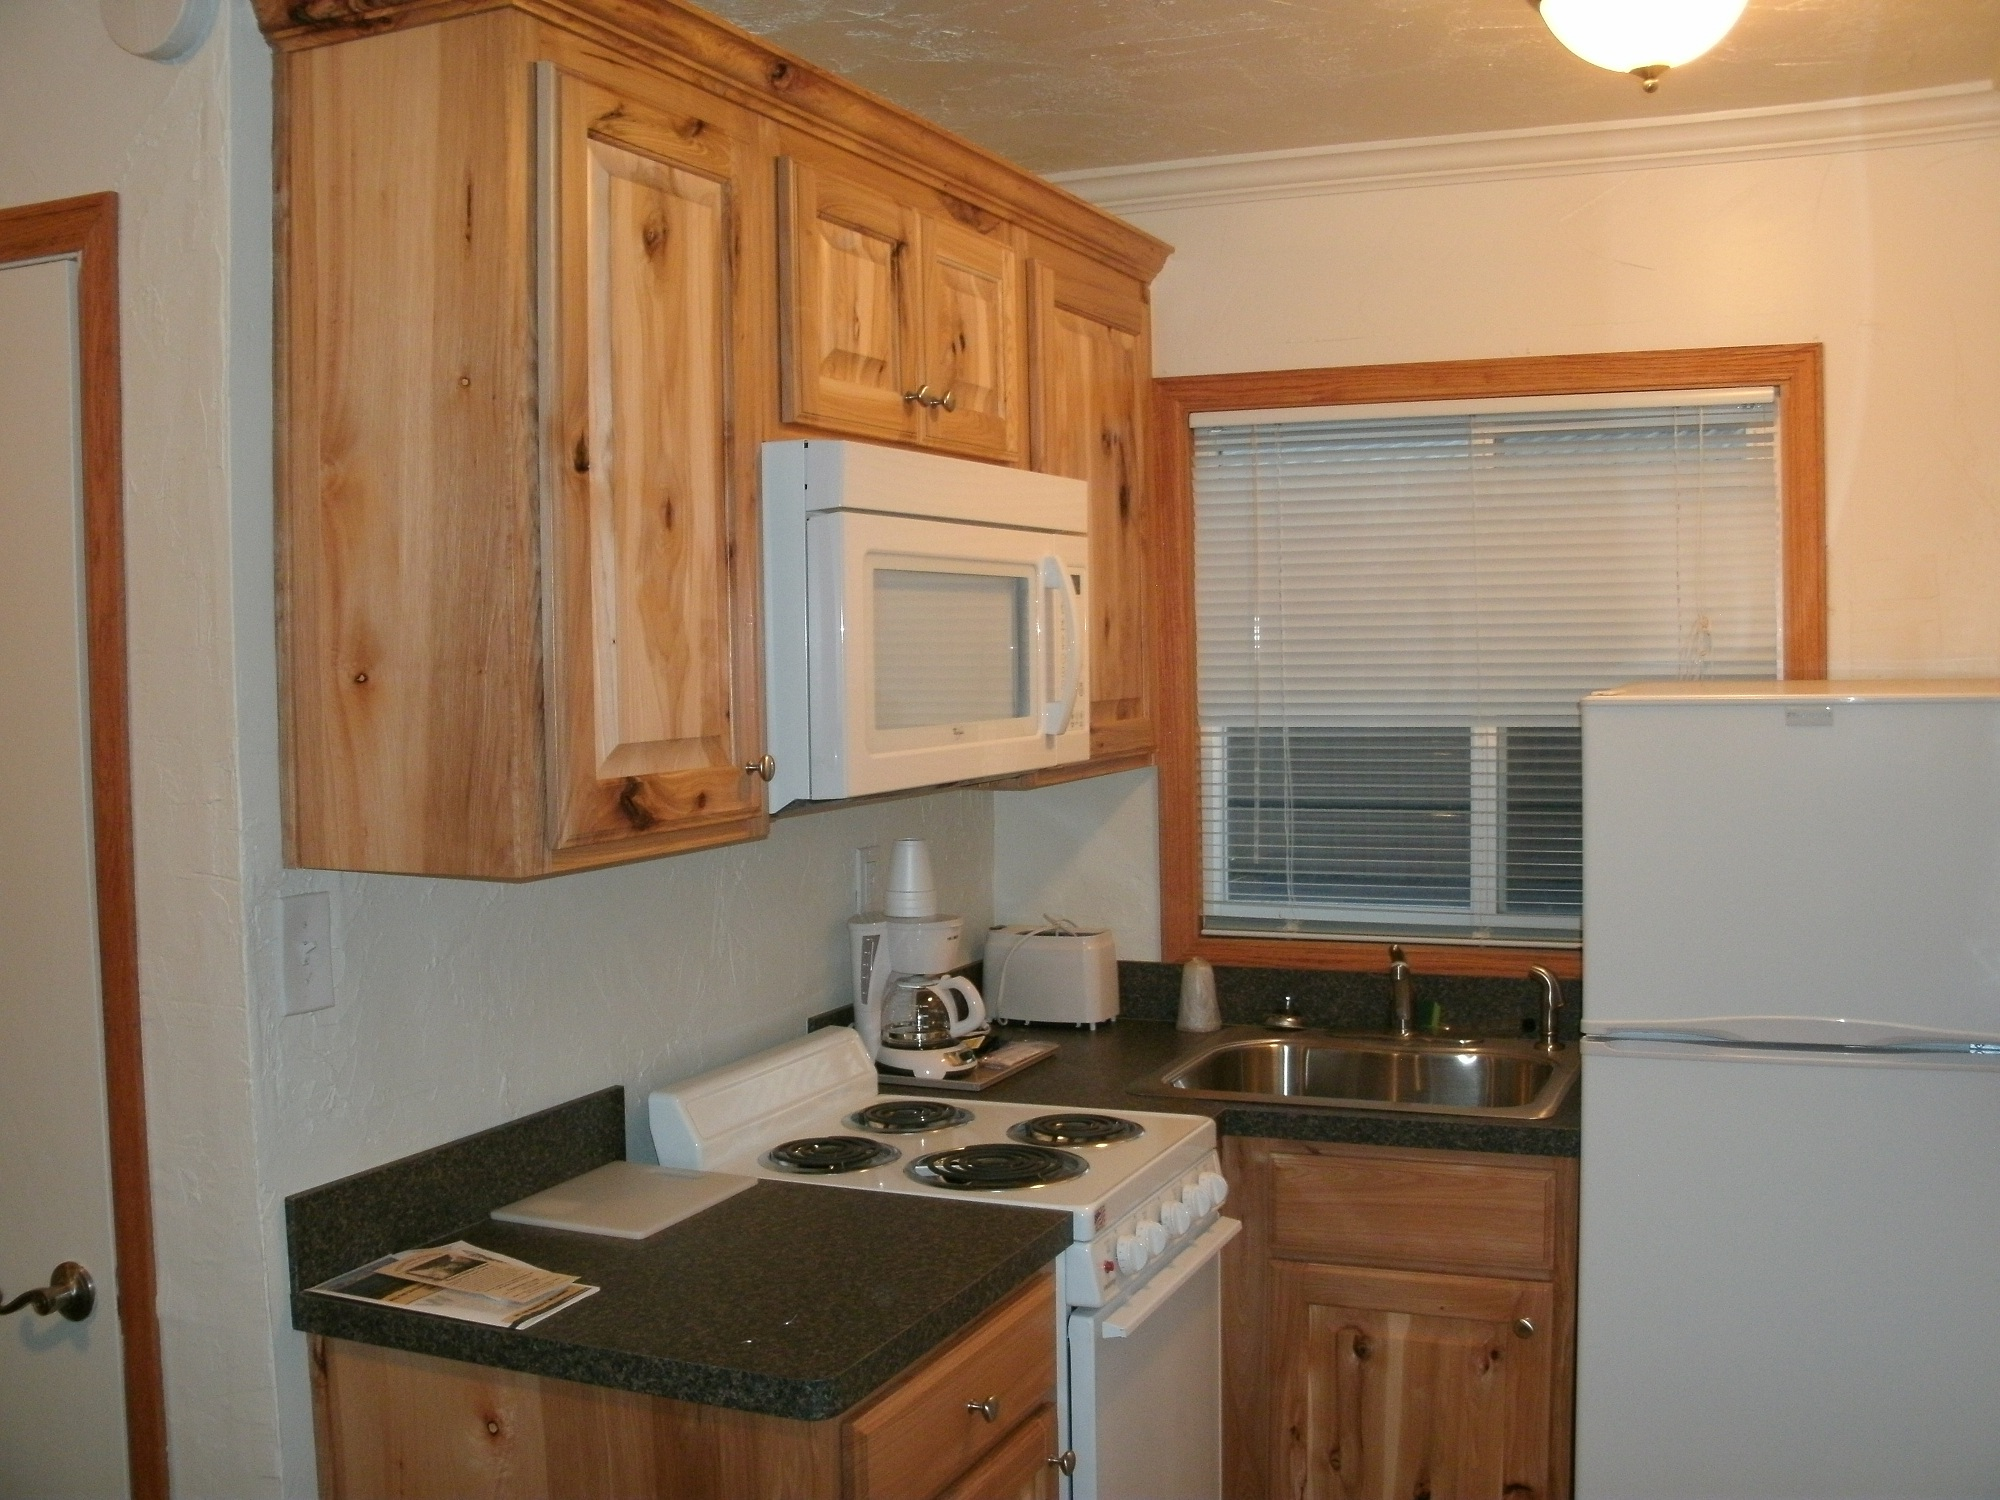 hotel with kitchen in room bar table sets 1000 43 images about tiny homes on pinterest kitchenettes